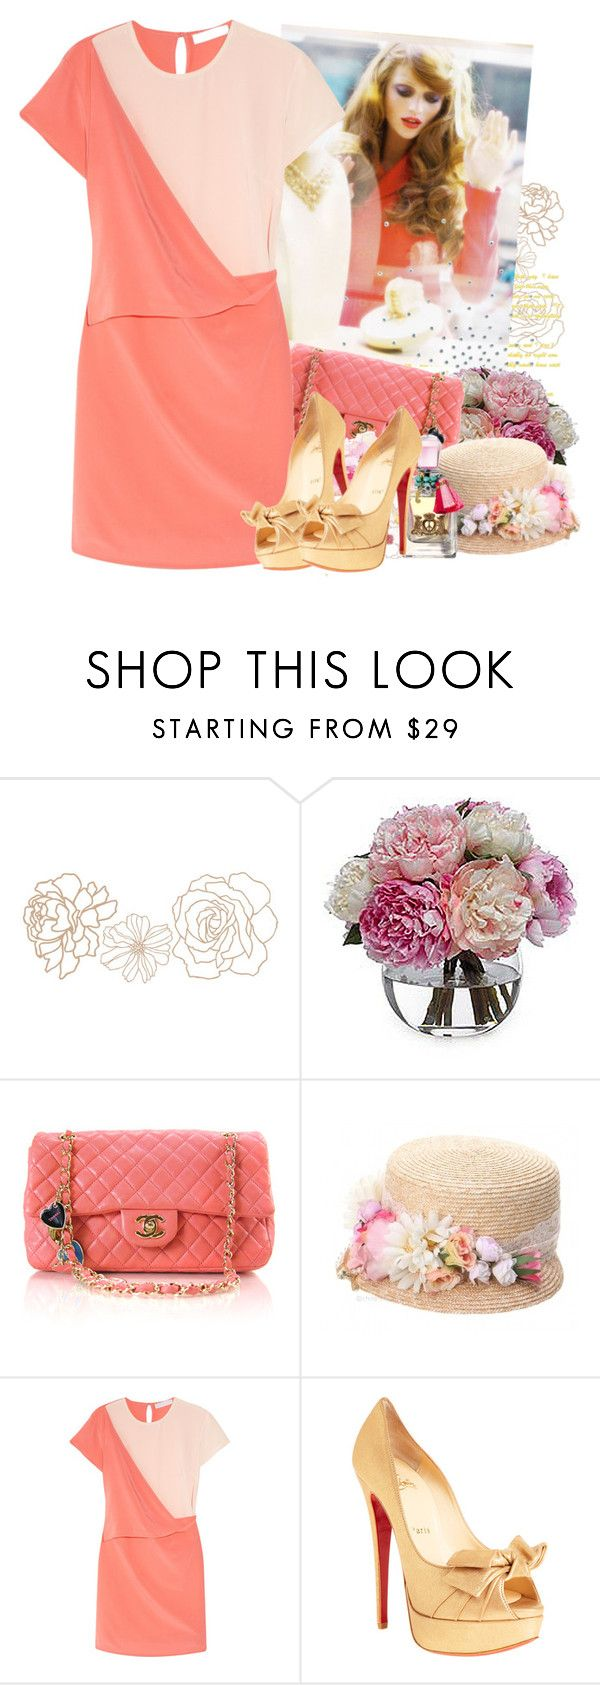 """Peach it, sister...."" by aleksandra ❤ liked on Polyvore featuring Peony, Grevi, Richard Nicoll, Christian Louboutin and Juicy Couture"